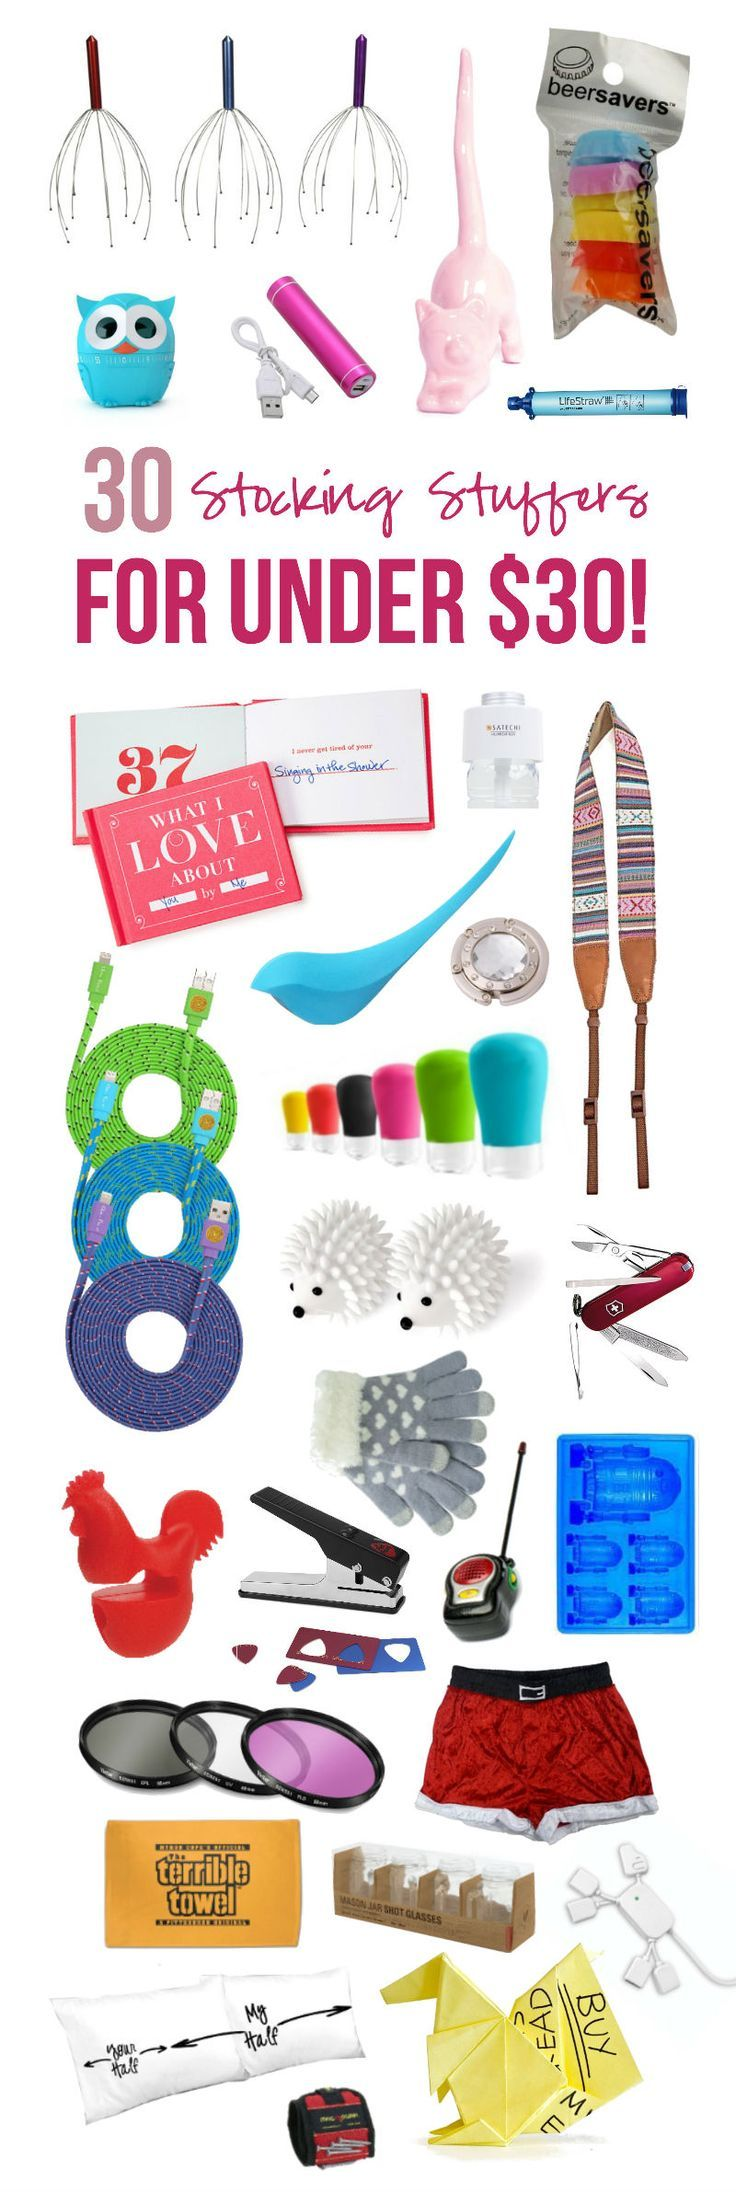 30 Stocking Stuffers Under $30! - Happily Ever After, Etc.